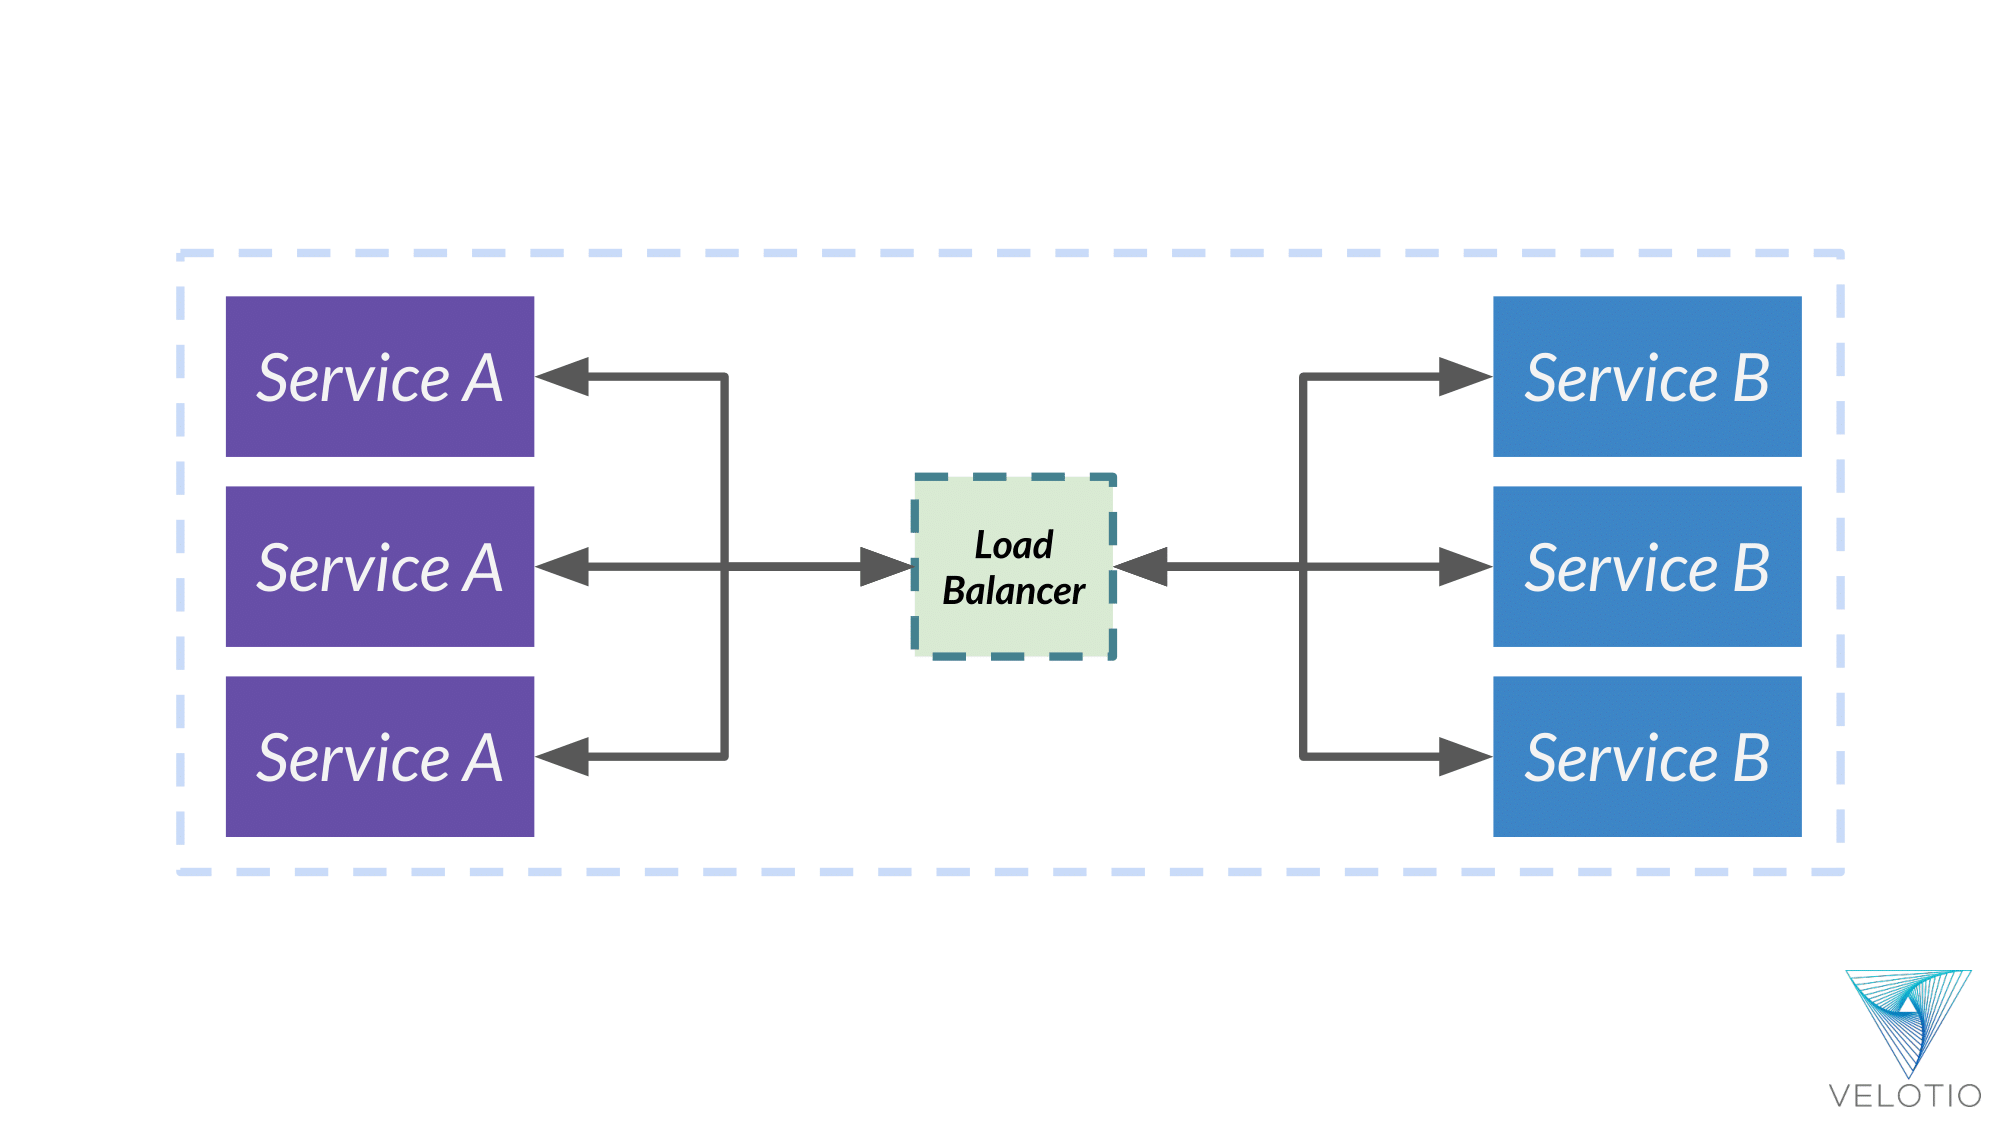 Load balancers allow communication between multiple instances of same service